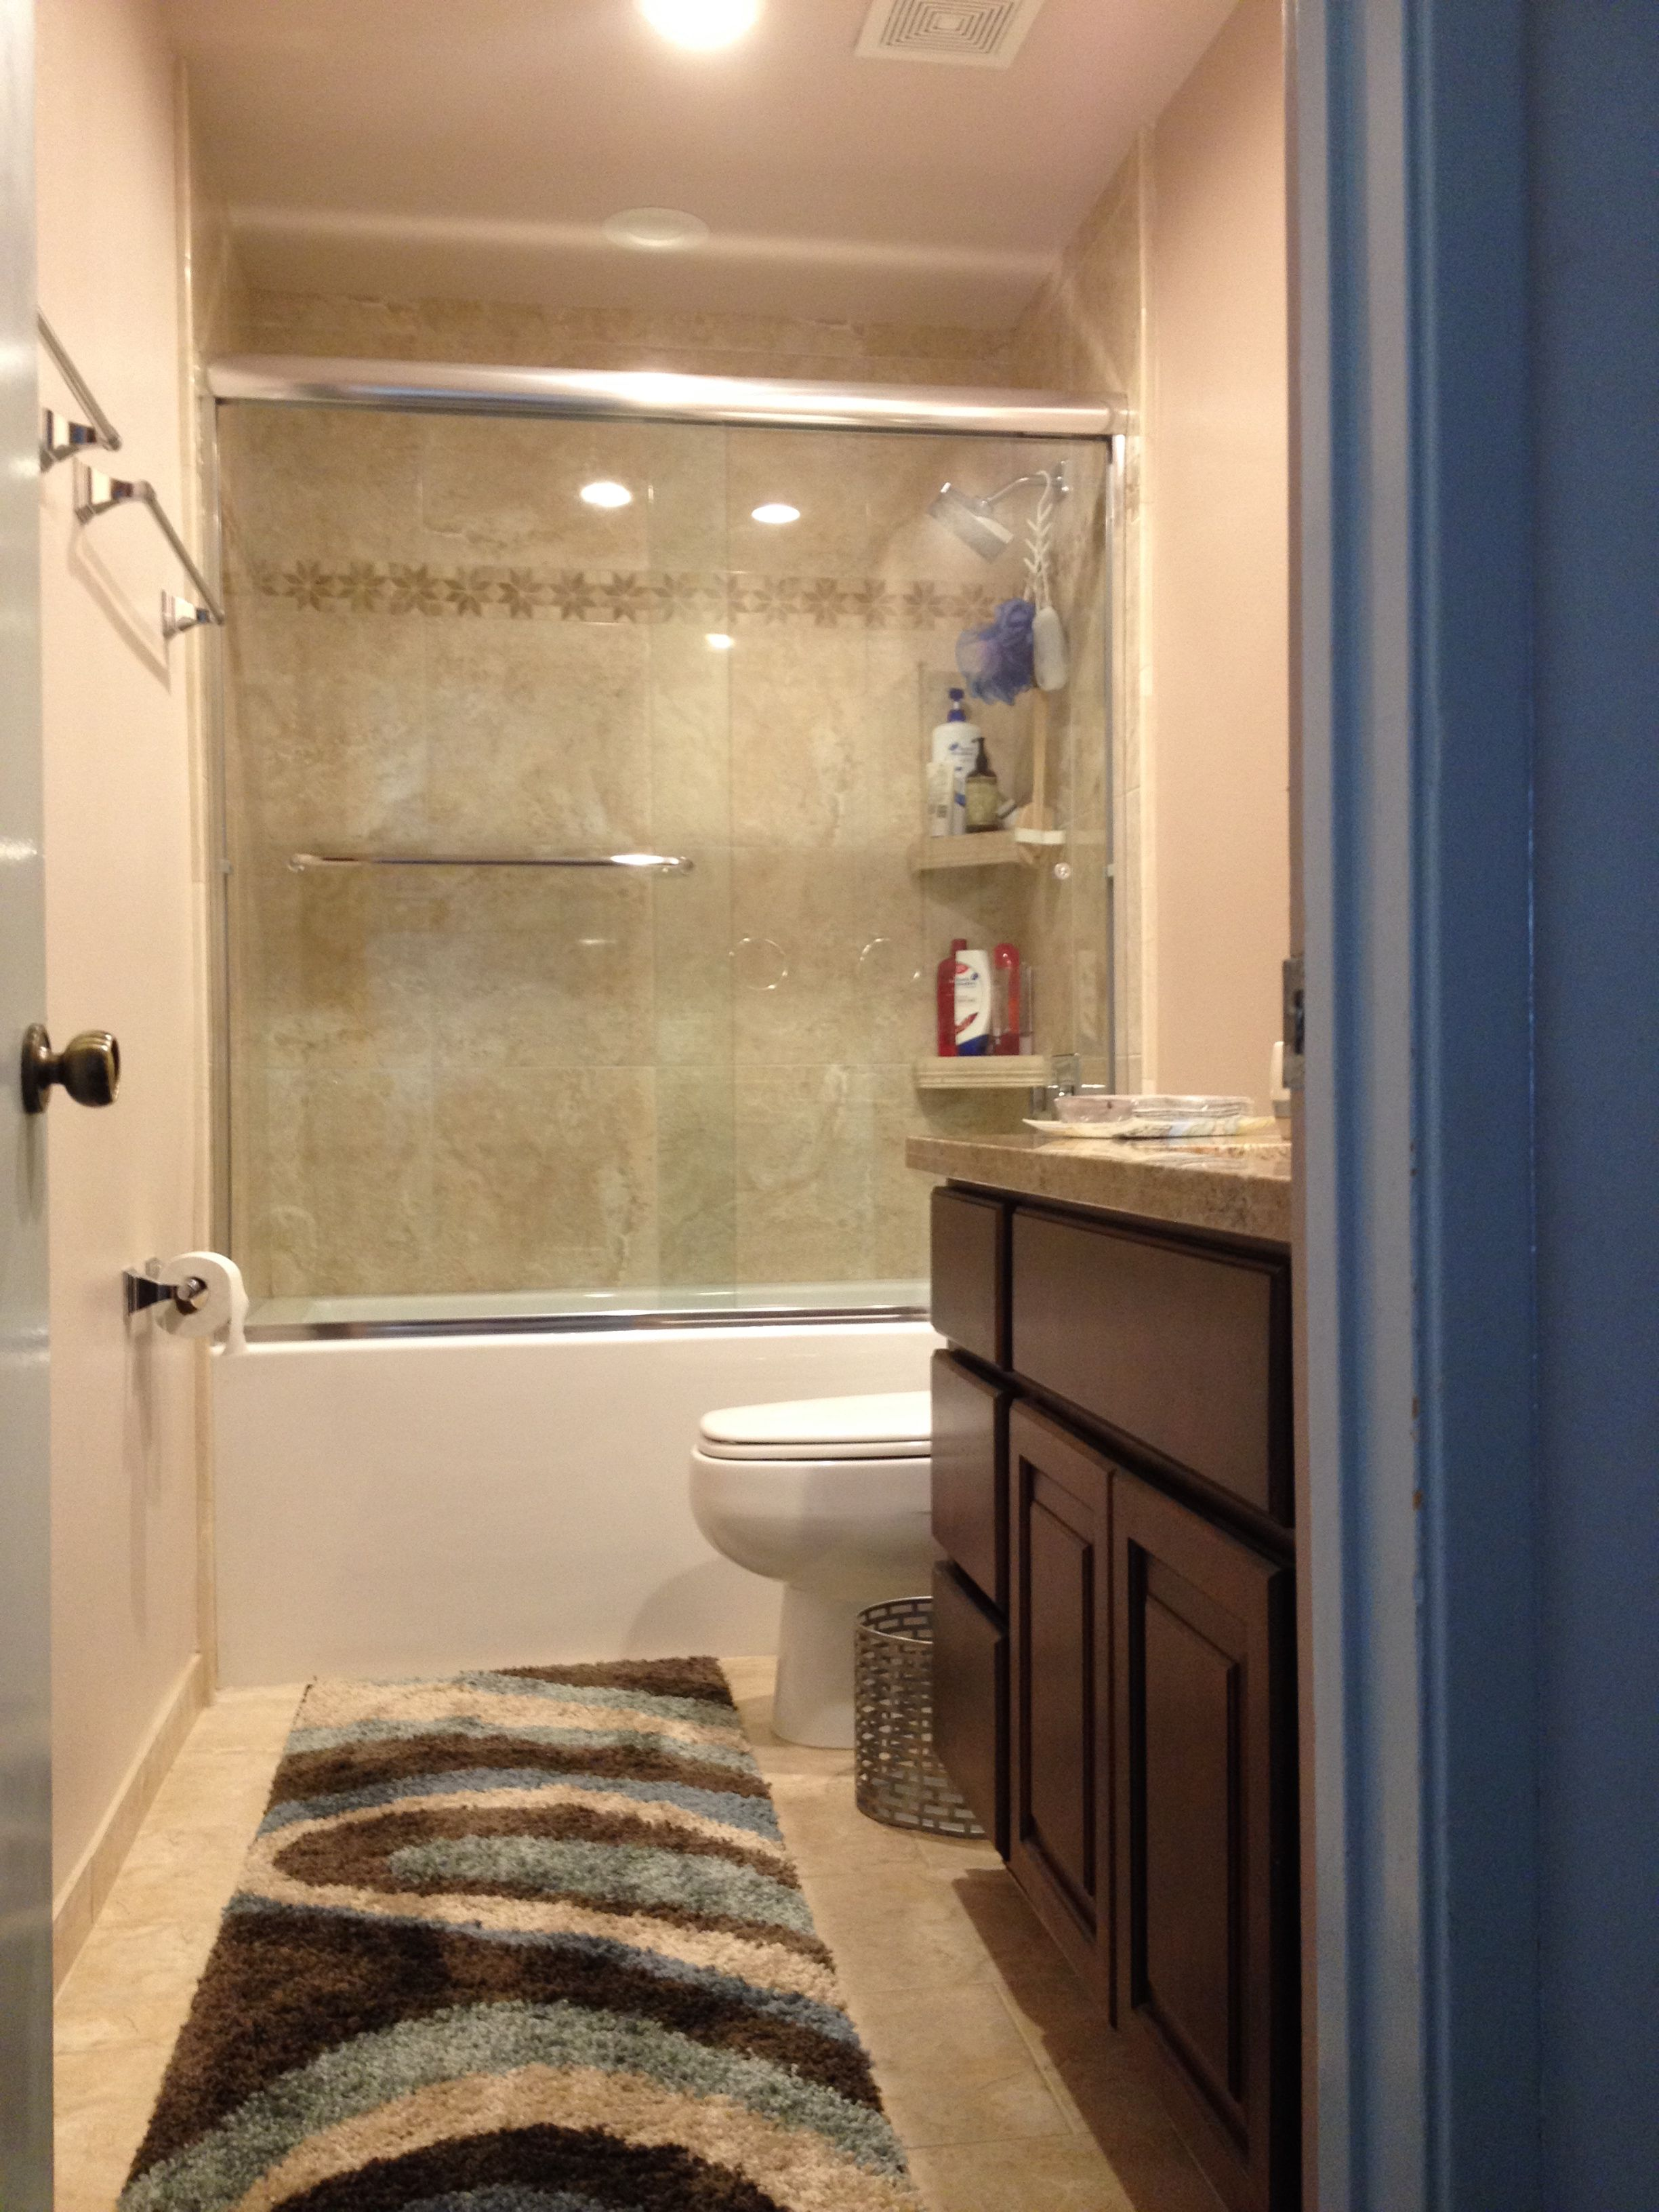 New Bathroom. Guest bath (With images) | Installing ...